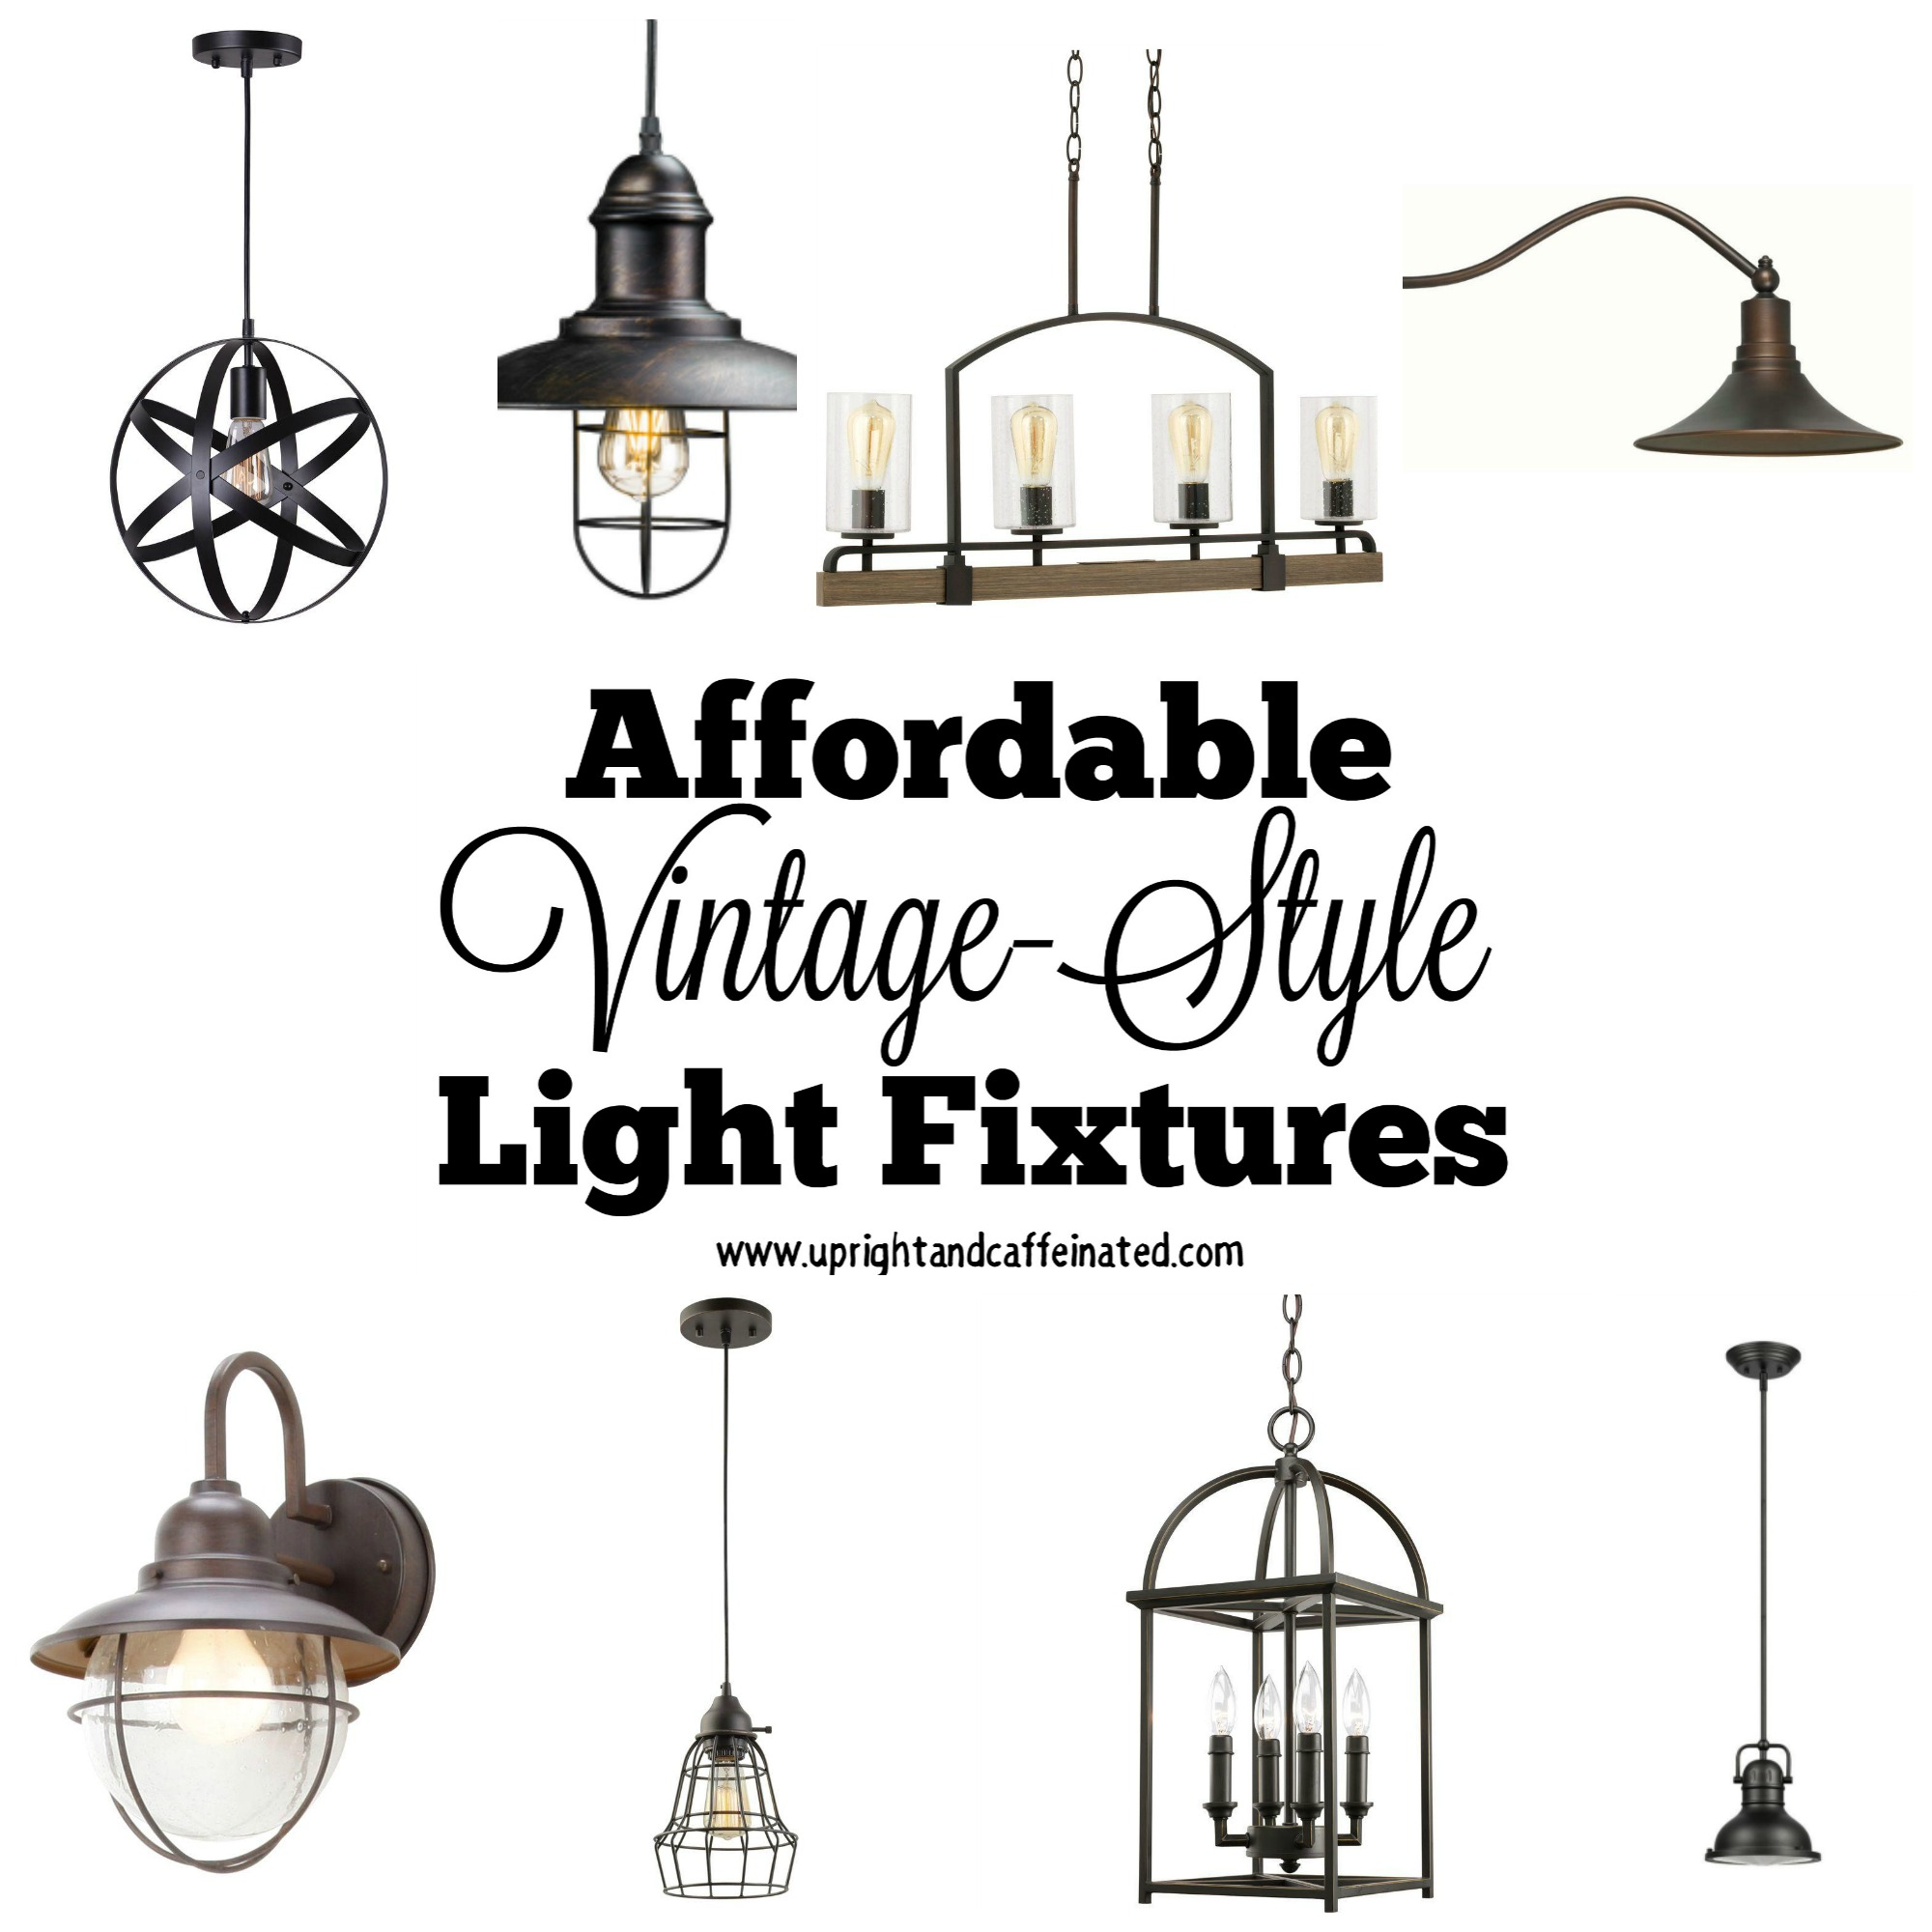 A complete list of affordable vintage light fixtures found at the Home Depot.